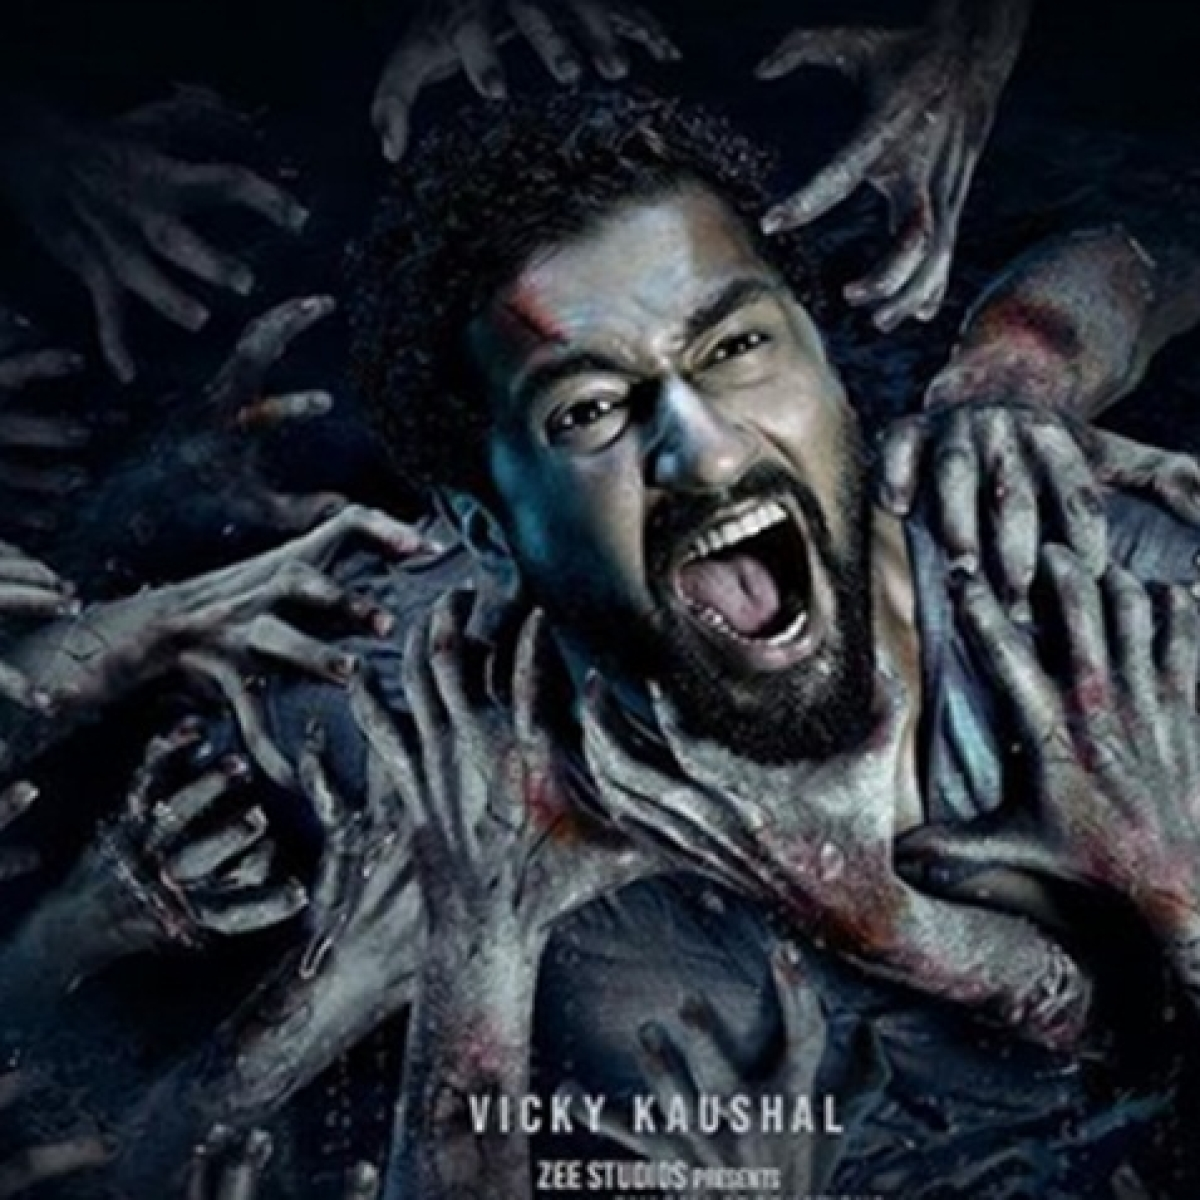 Vicky Kaushal drops new spooky posters of 'Bhoot Part One: The Haunted Ship'